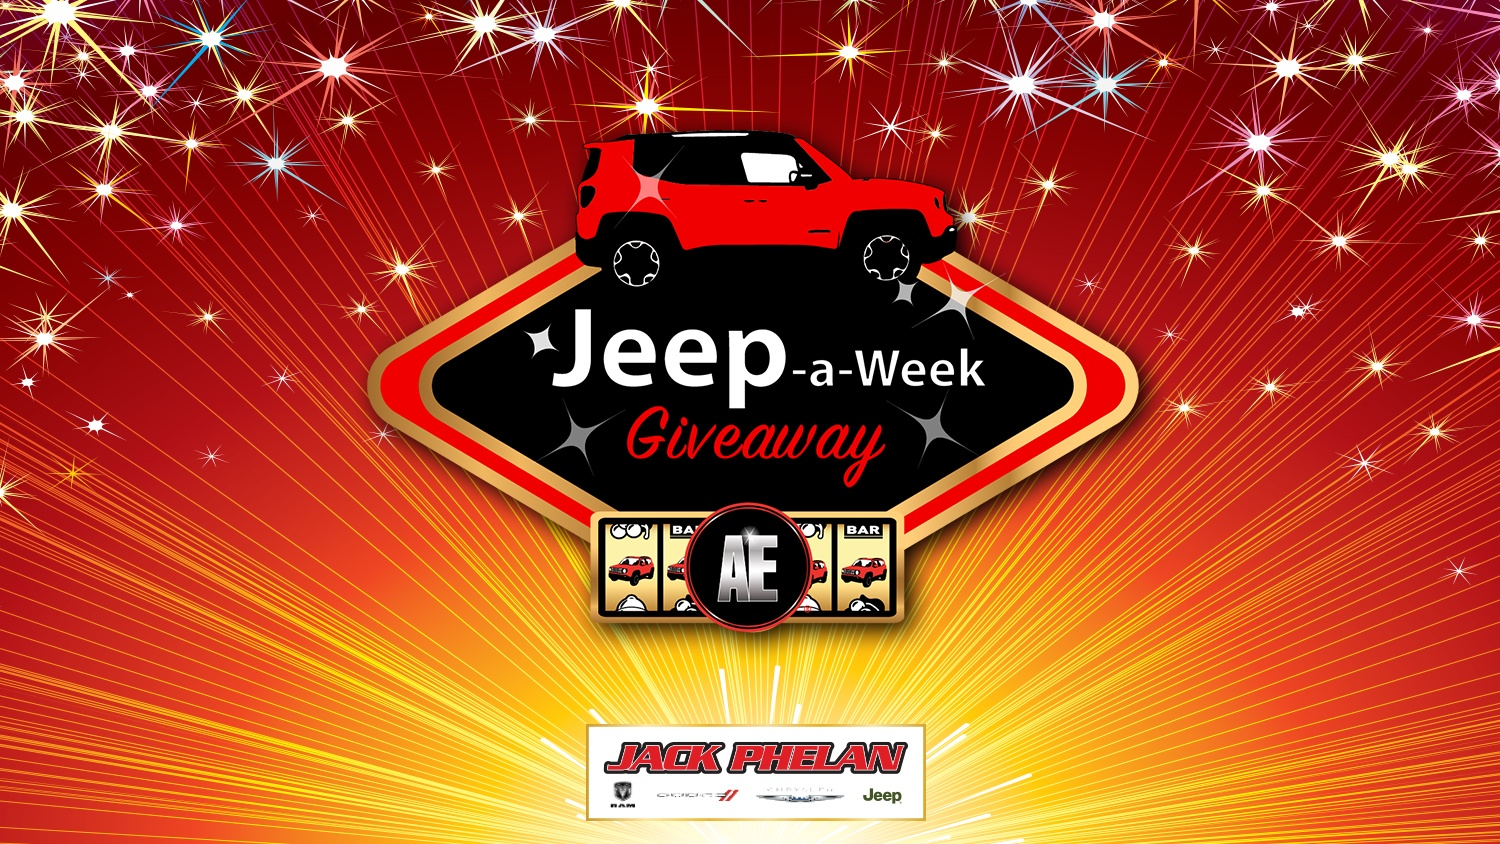 Rev Up Your Fall With Accel Entertainment's Jeep-a-Week Giveaway